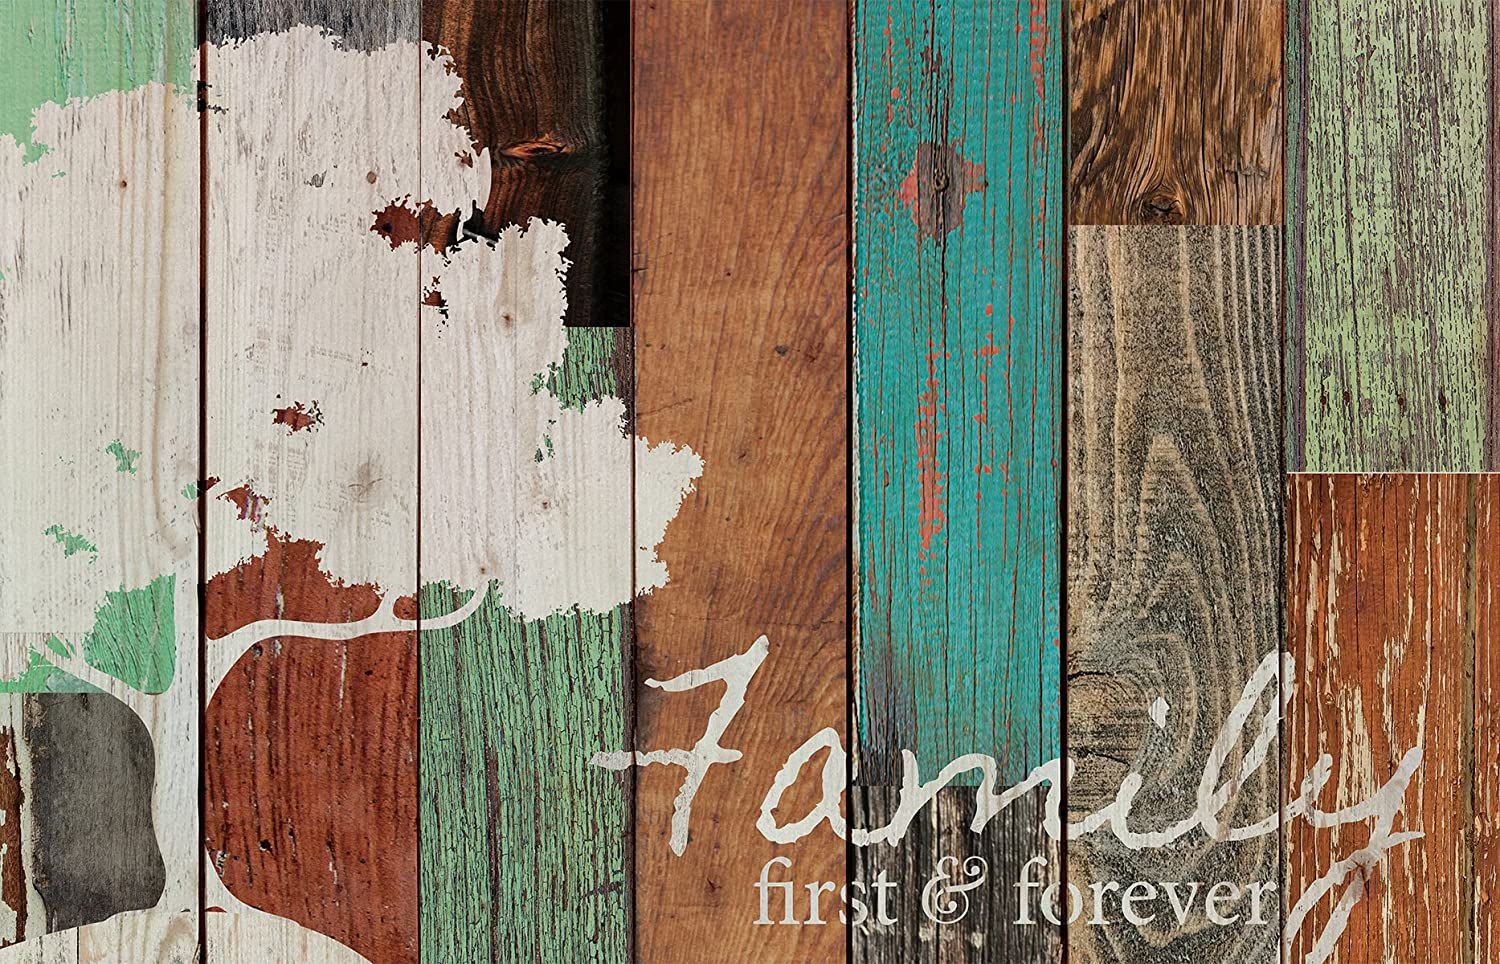 P. GRAHAM DUNN Family First & Forever Multicolor Tree Rustic 16 x 24 Wood Pallet Design Wall Art Sign